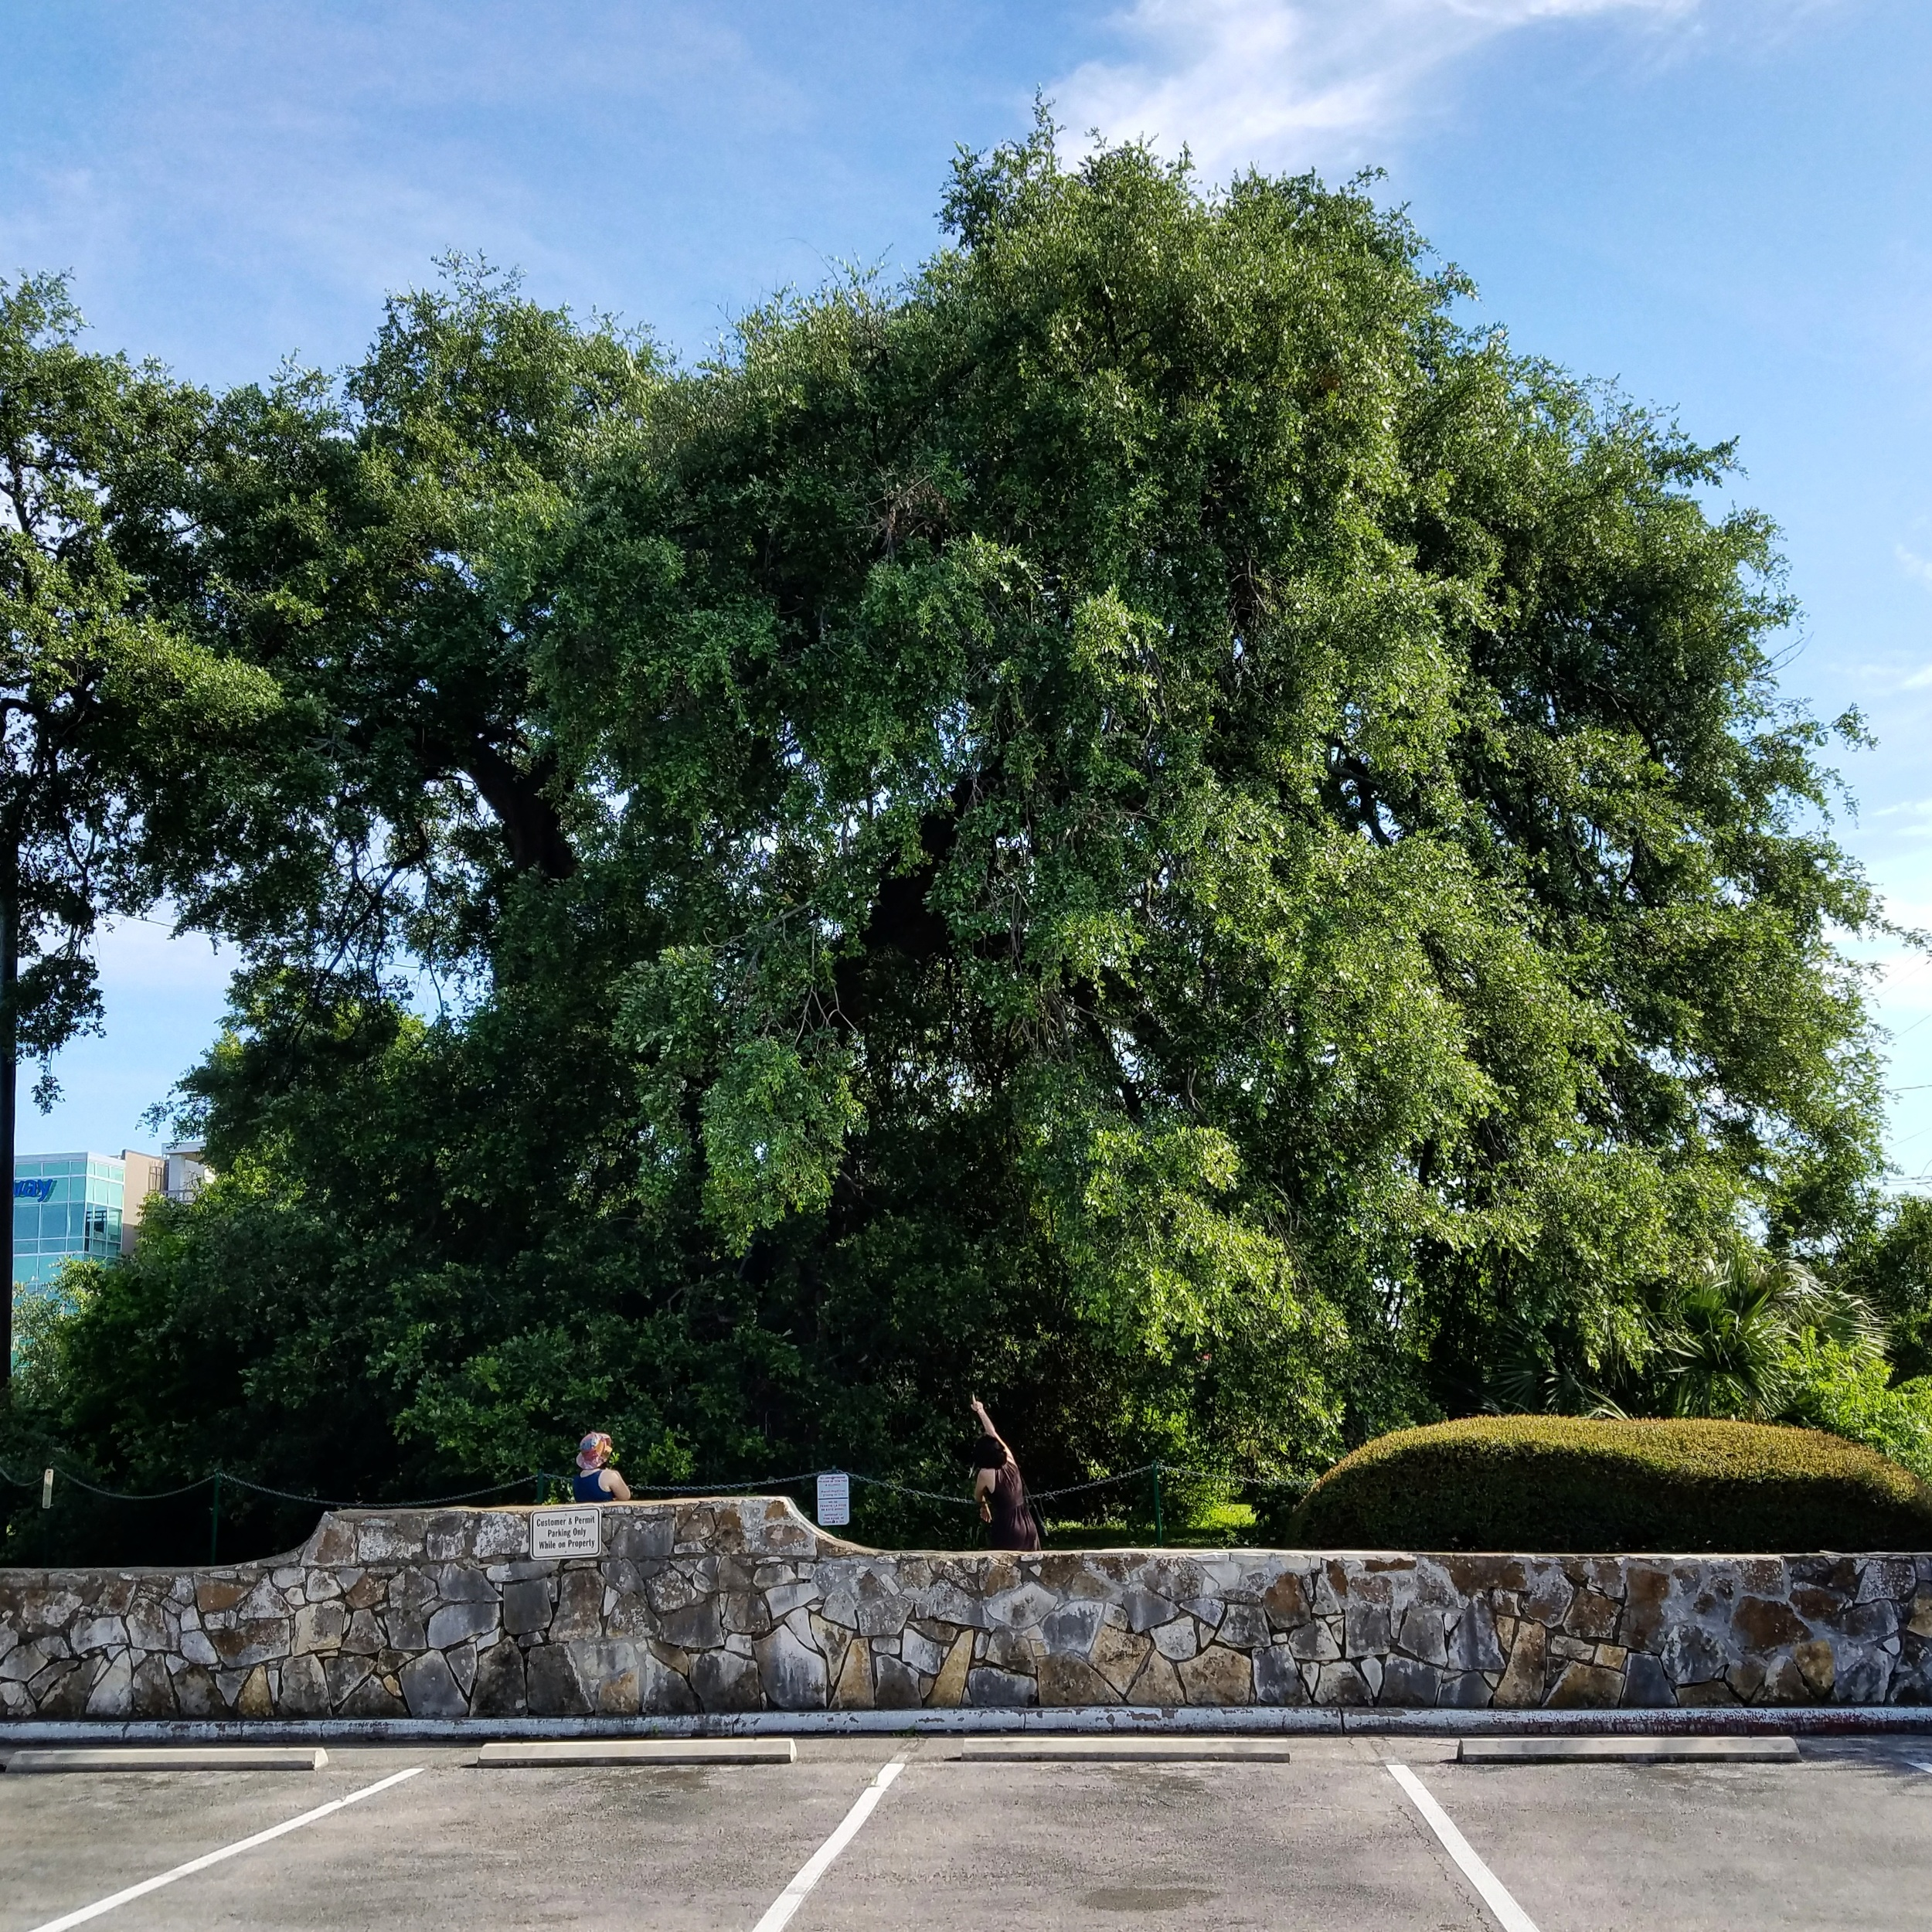 The Treaty Oak in Austin, Texas. June 2016.